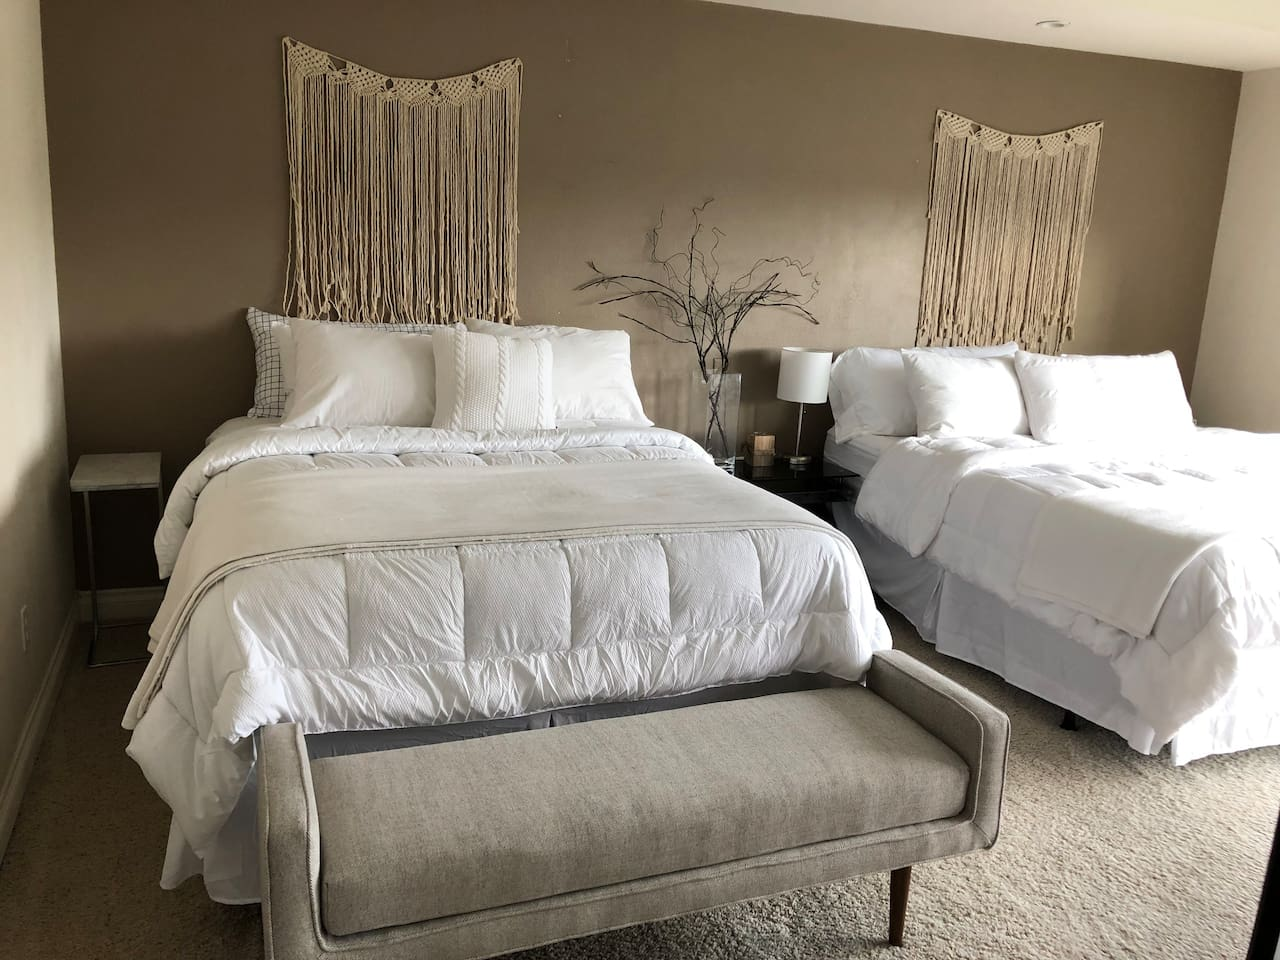 King bed and a queen bed